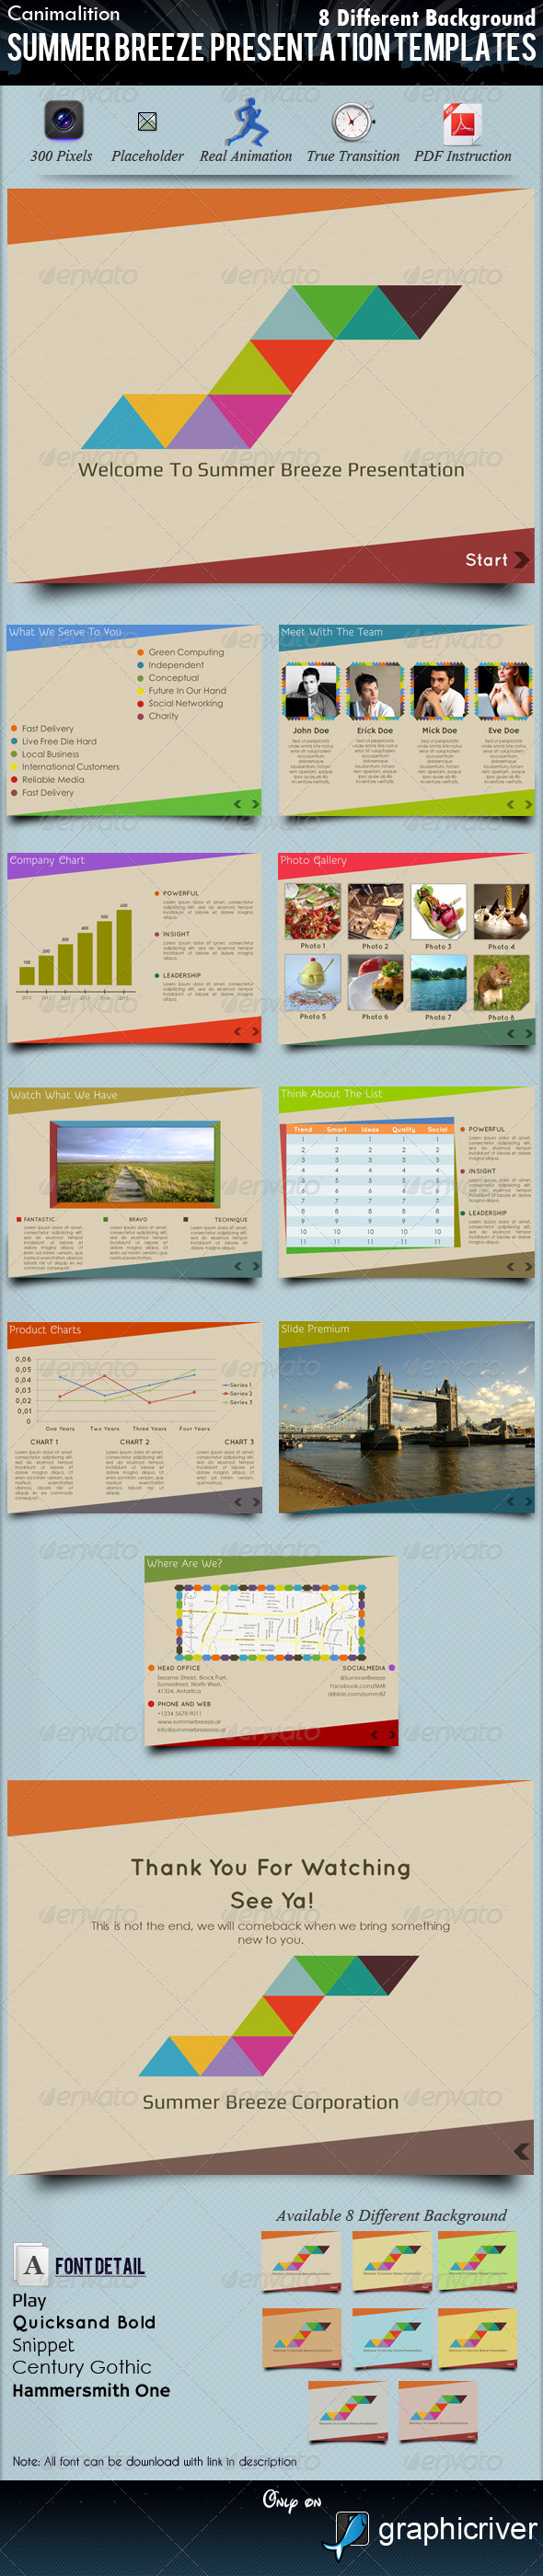 Summer Breeze Presentation Templates - Creative Powerpoint Templates